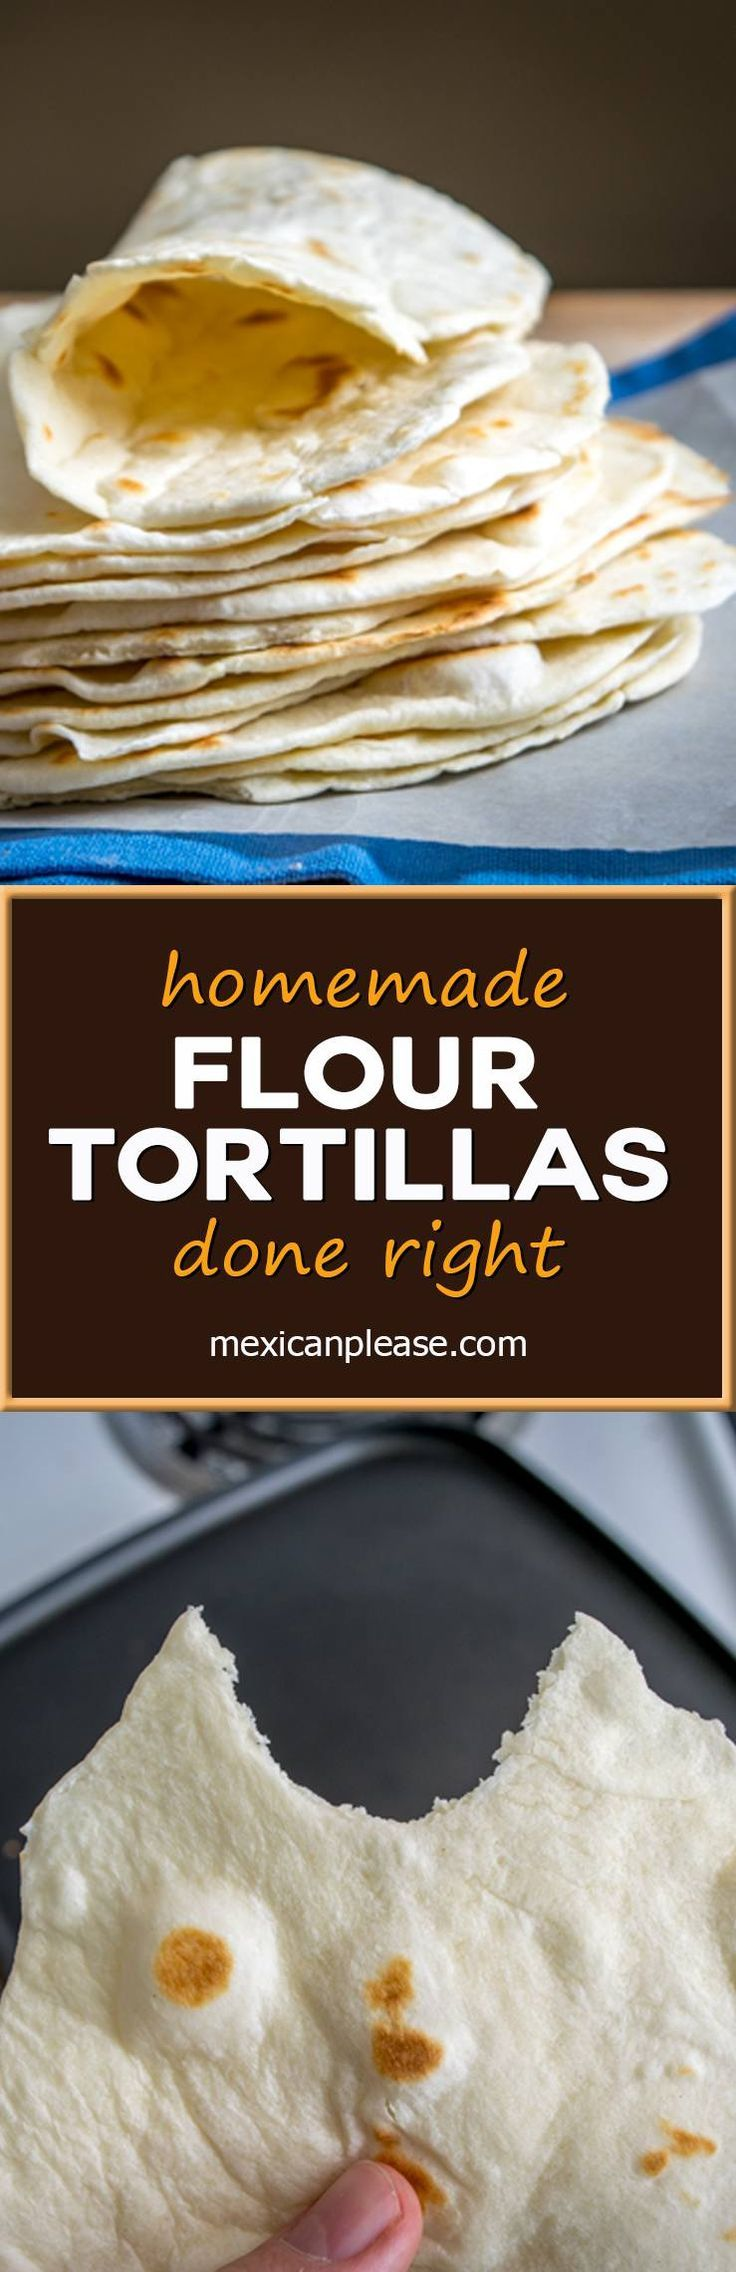 These light, delicious homemade flour tortillas have only four ingredients and come in at just under eight cents each!  mexicanplease.com